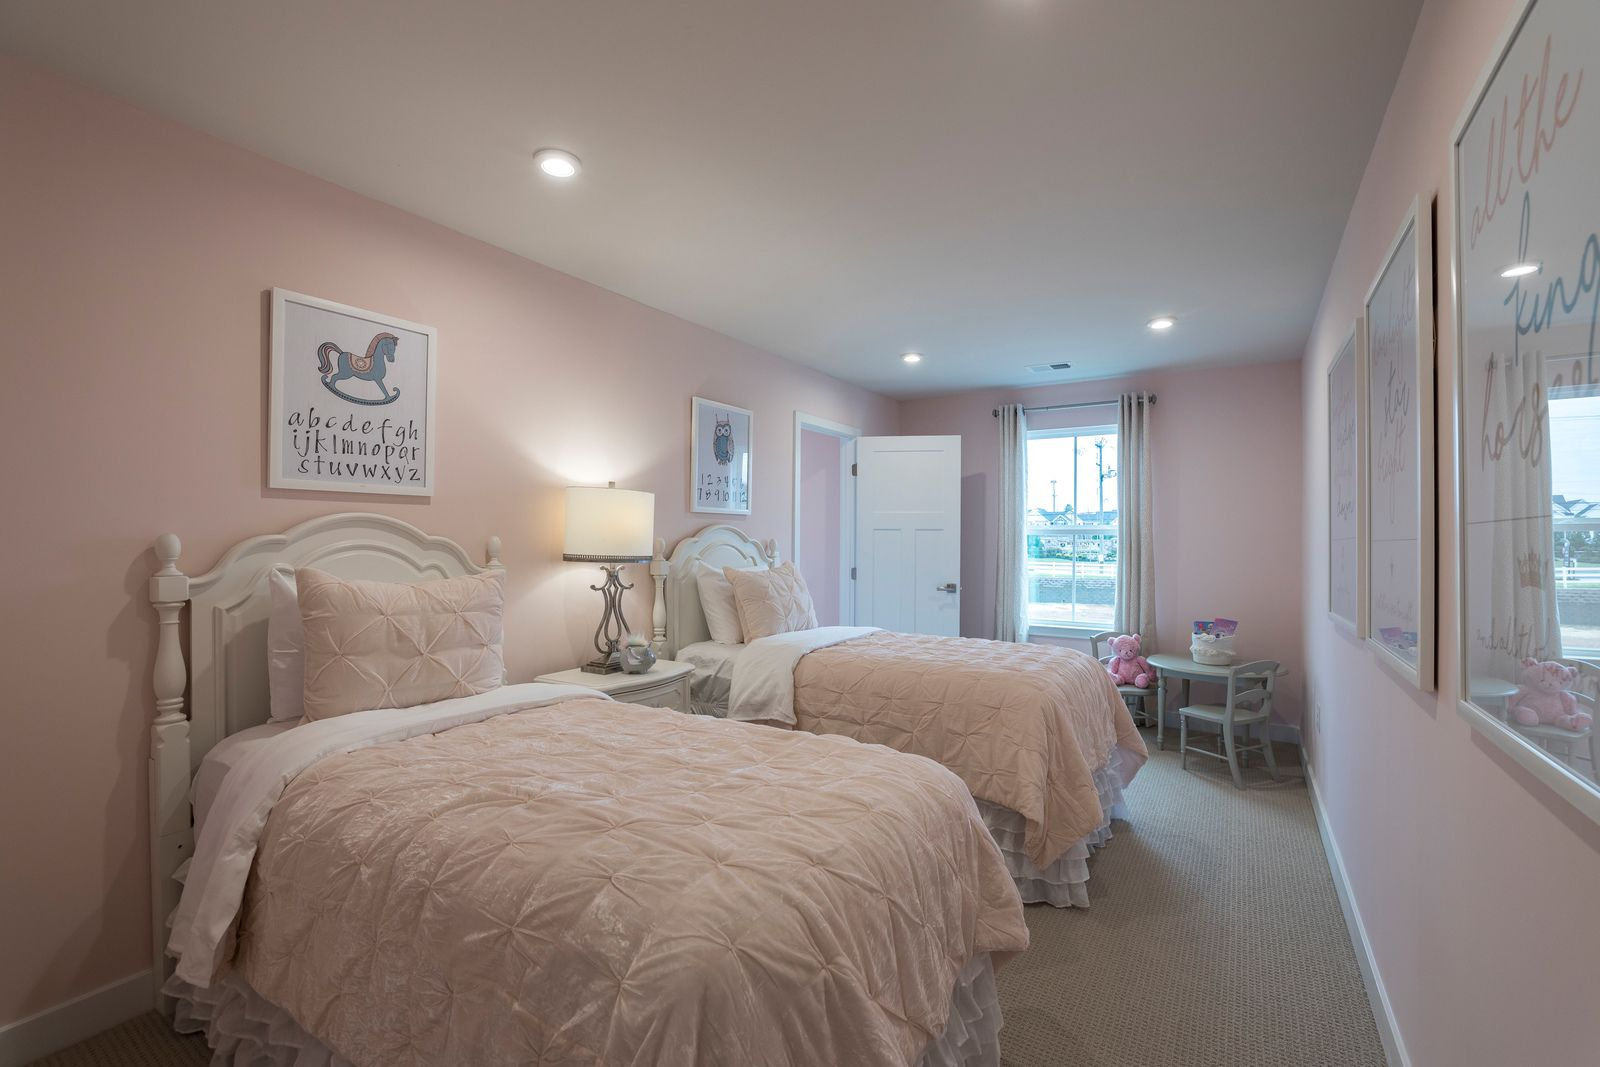 Bedroom featured in the Griffin Hall Grand By Ryan Homes in Philadelphia, PA